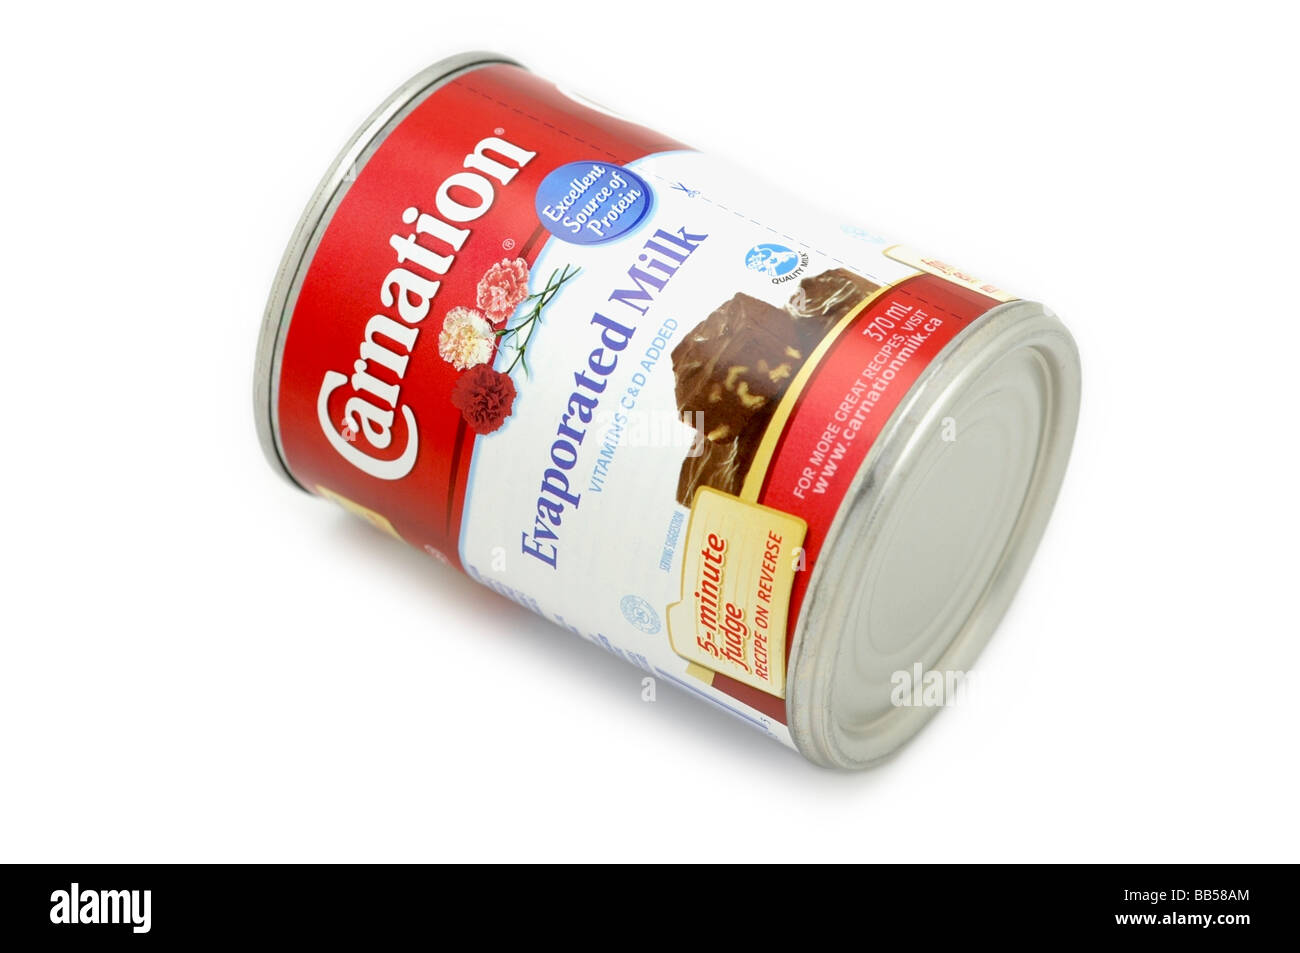 Tin of Evaporated Milk - Stock Image